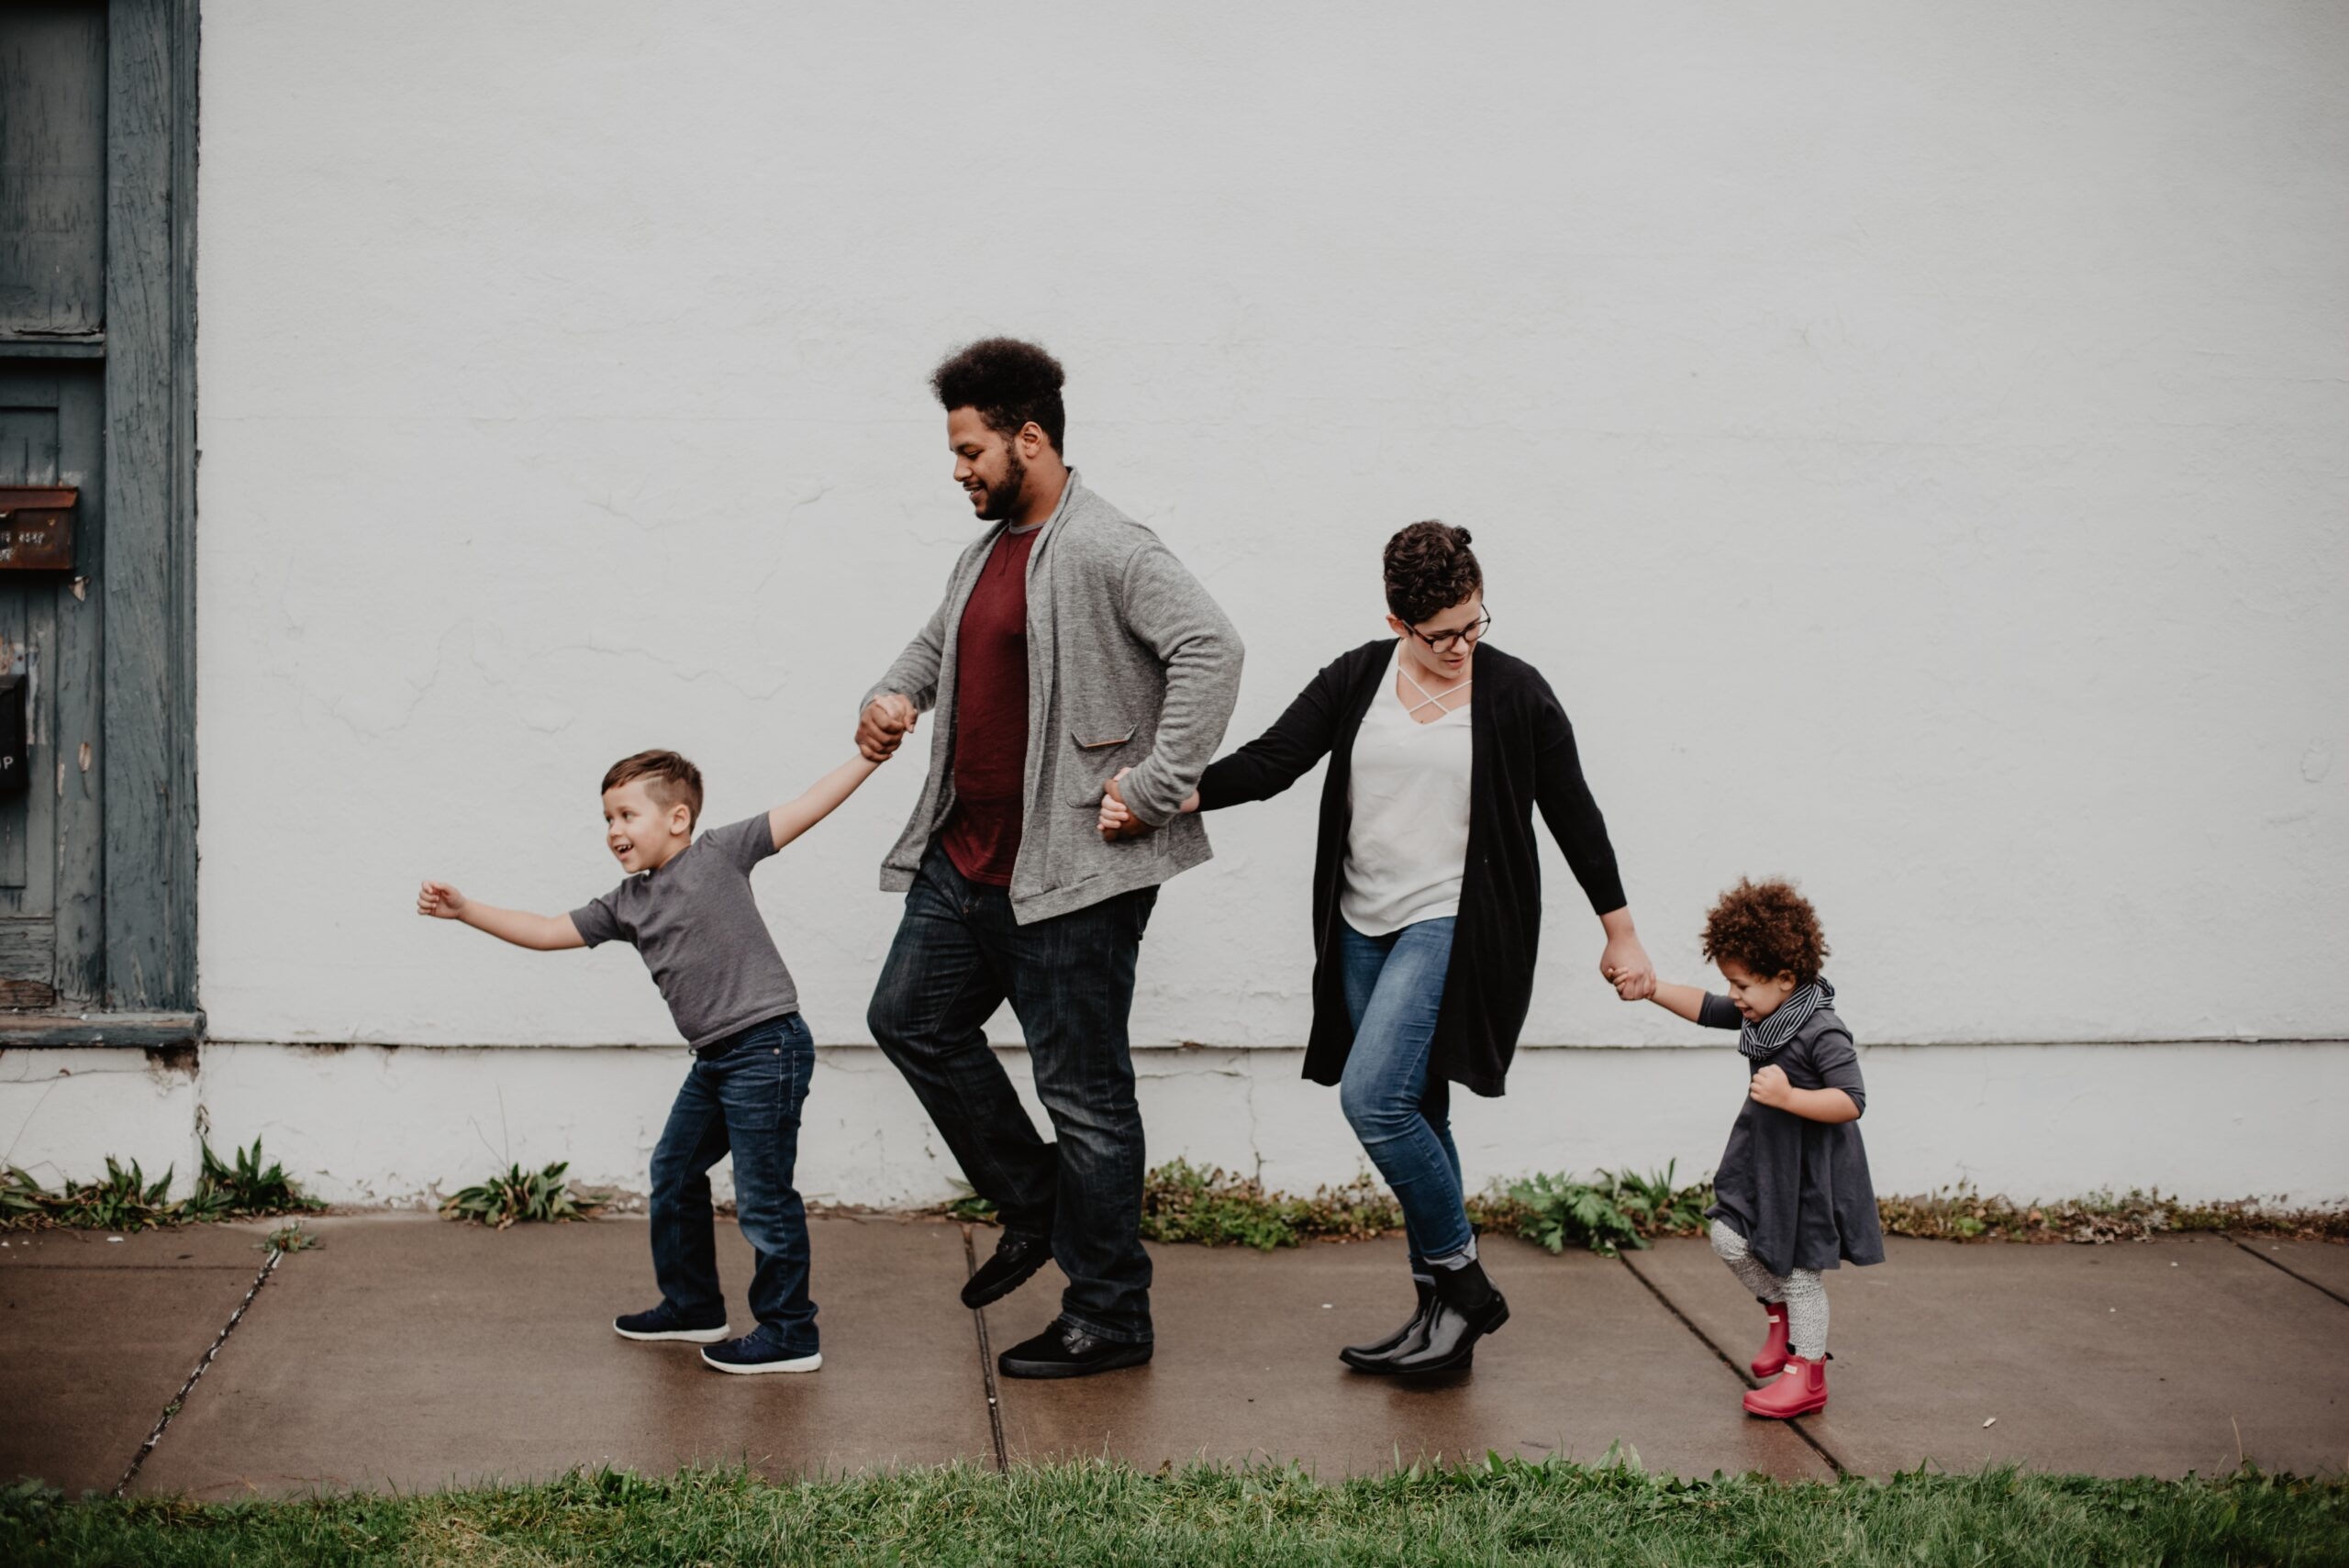 a family with two children walk in a line holding hands on a wet sidewalk